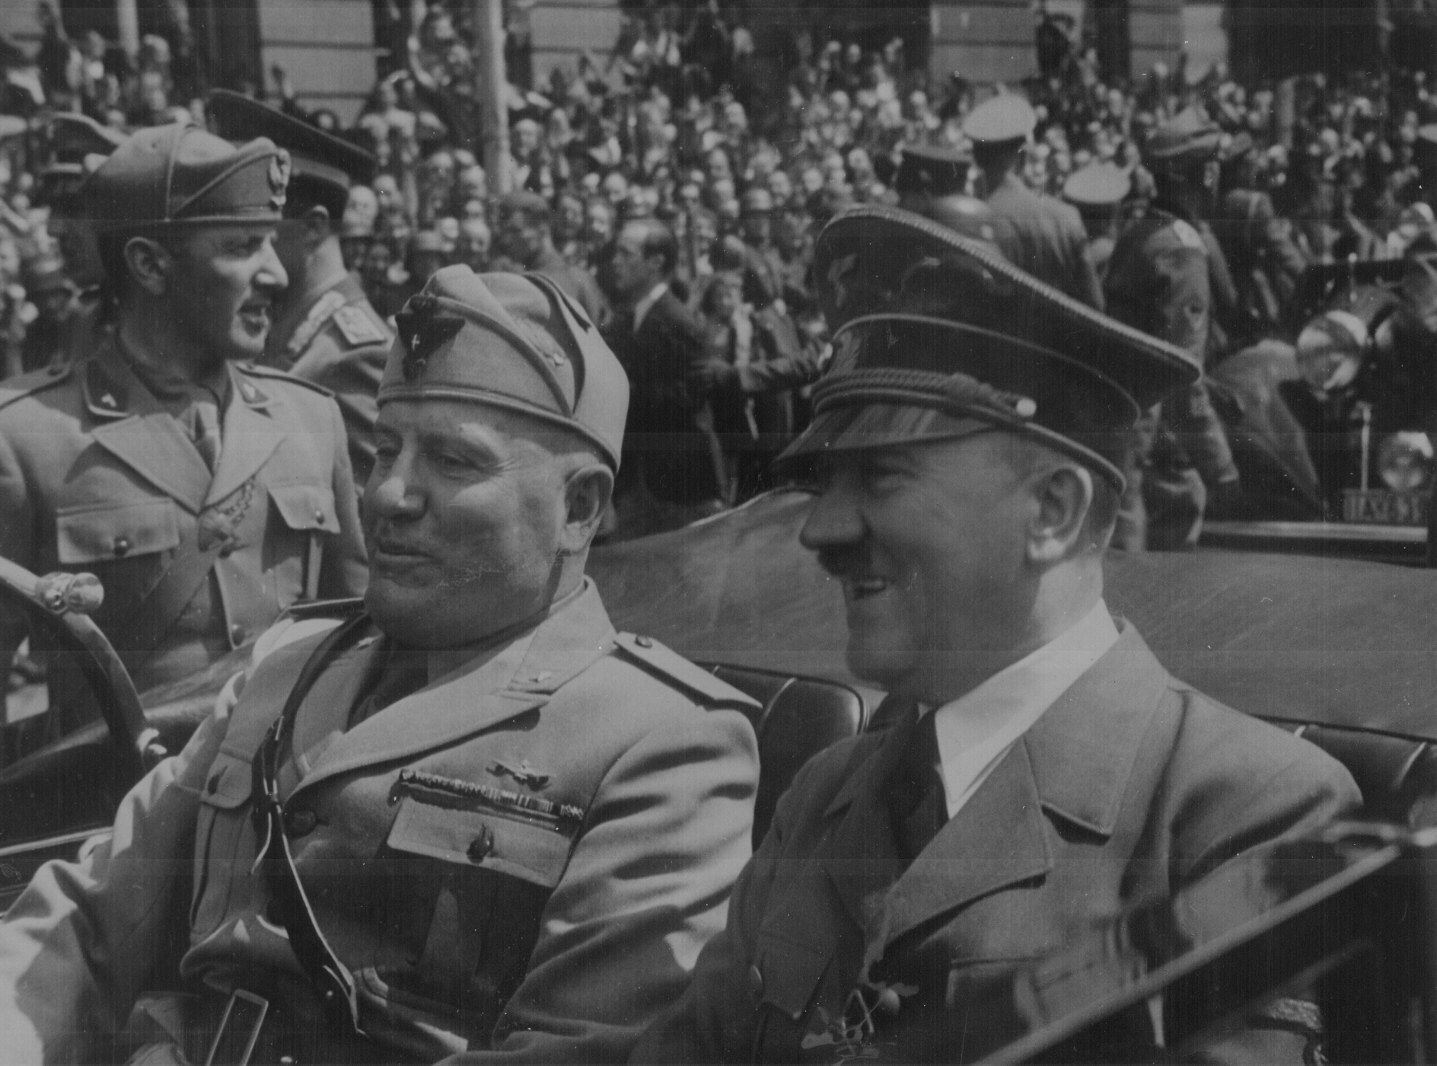 Hitler's Rise to Power: Timeline